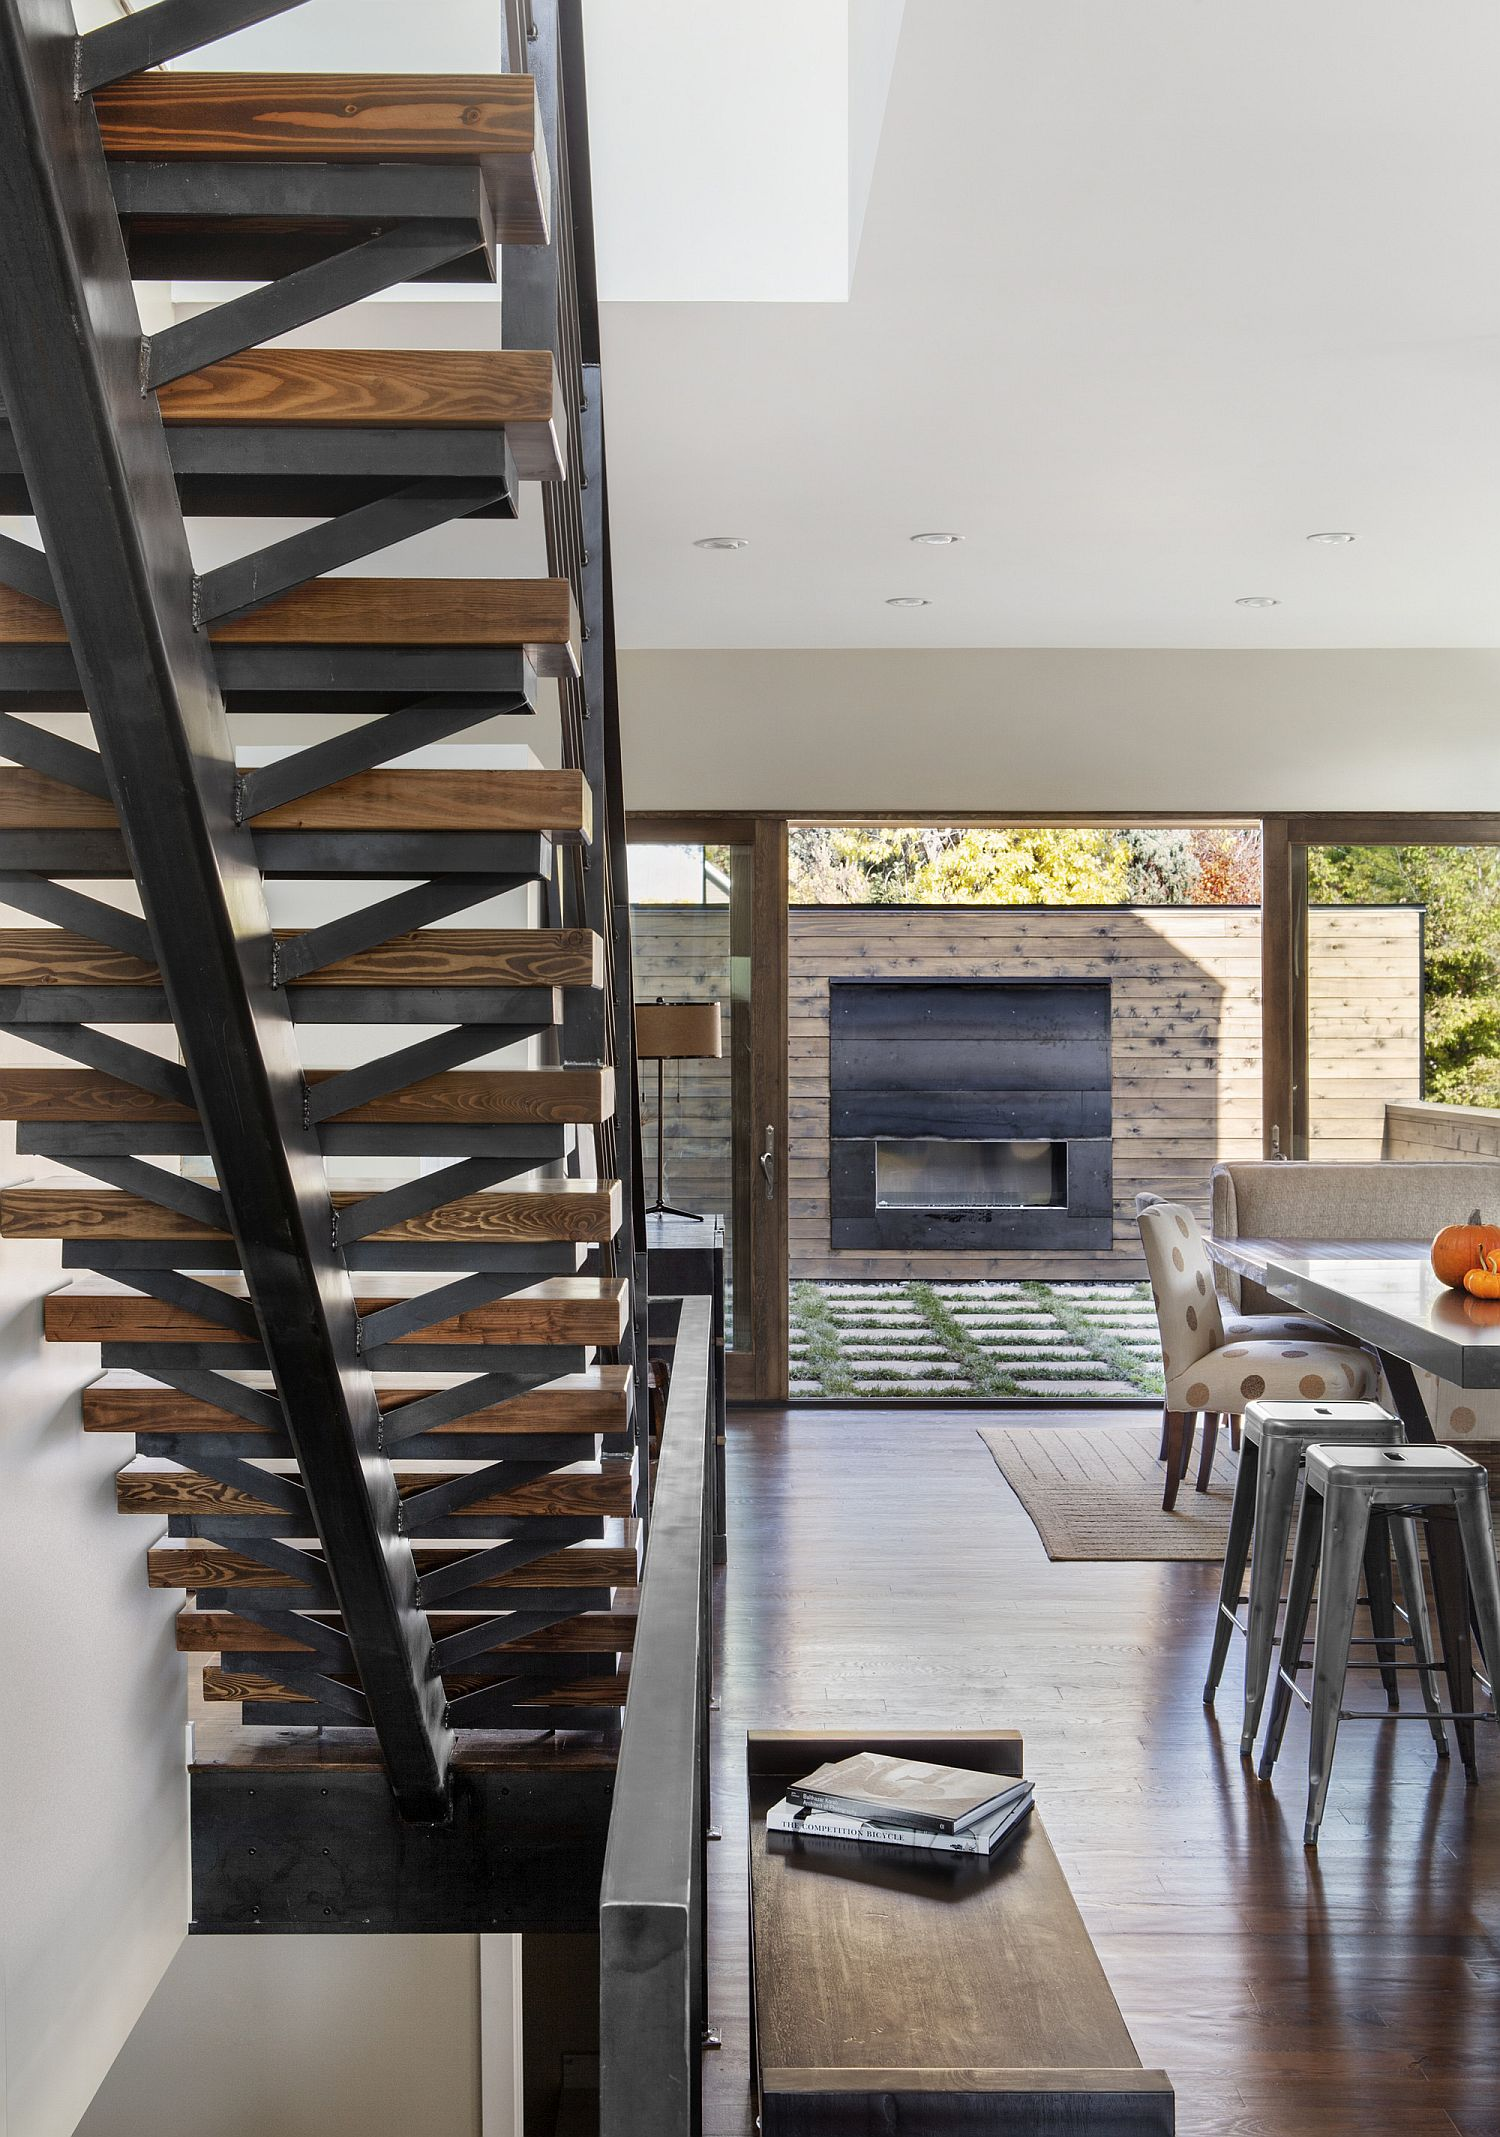 Staircase connects the different levels of the house with ease